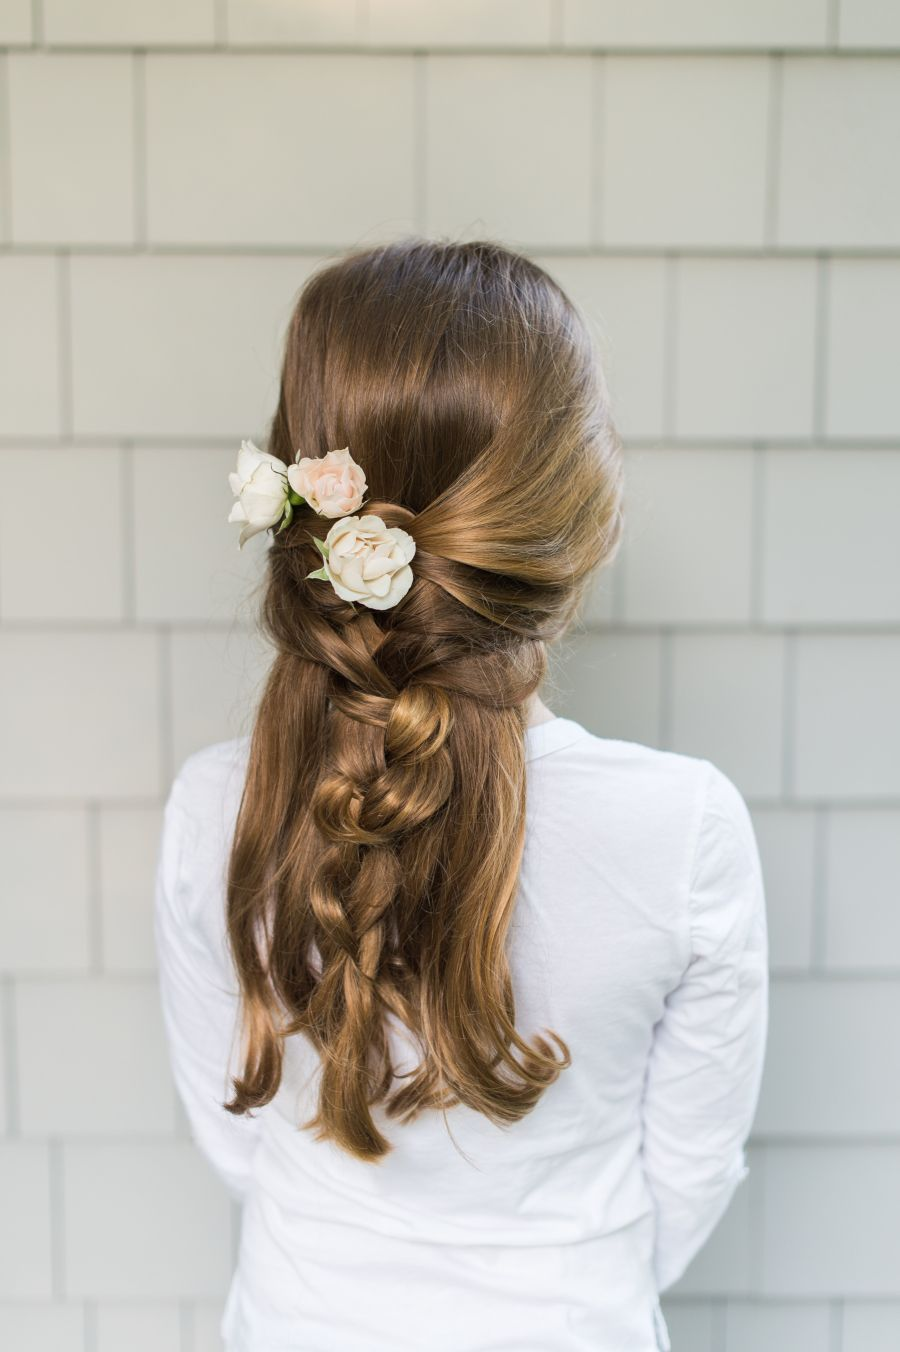 Adorable flowergirl braid hair style natural waves and bridal